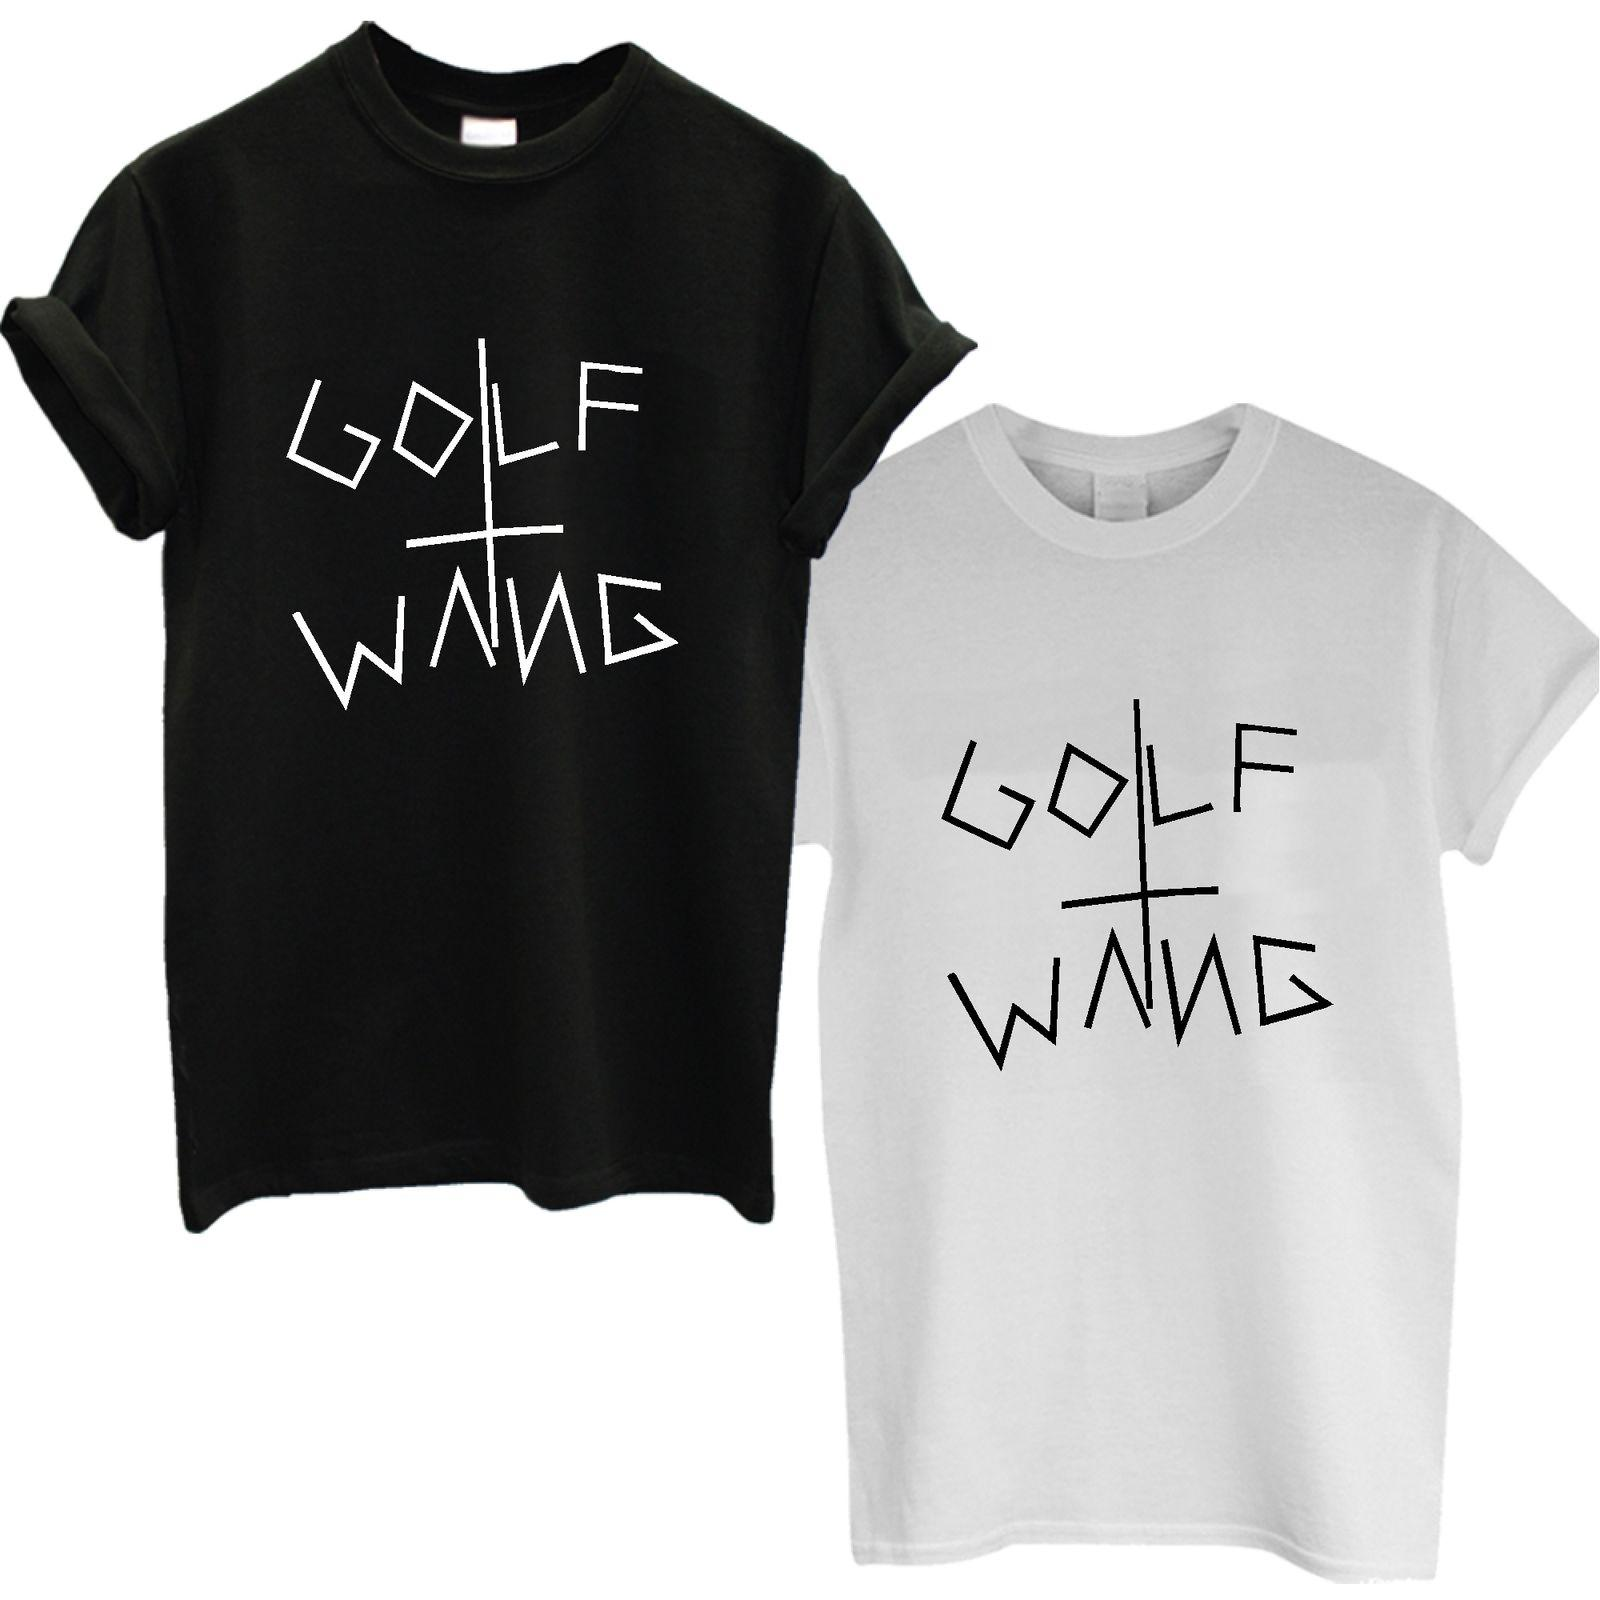 9b49fd294770 GOLF WANG T SHIRT TYLER THE CREATOR OFWGKTA TOP MENS LADIES GIRLS BNWT  Funny Unisex Casual Gift Funny Printed T Shirts Cool Tee From  Free will shirts